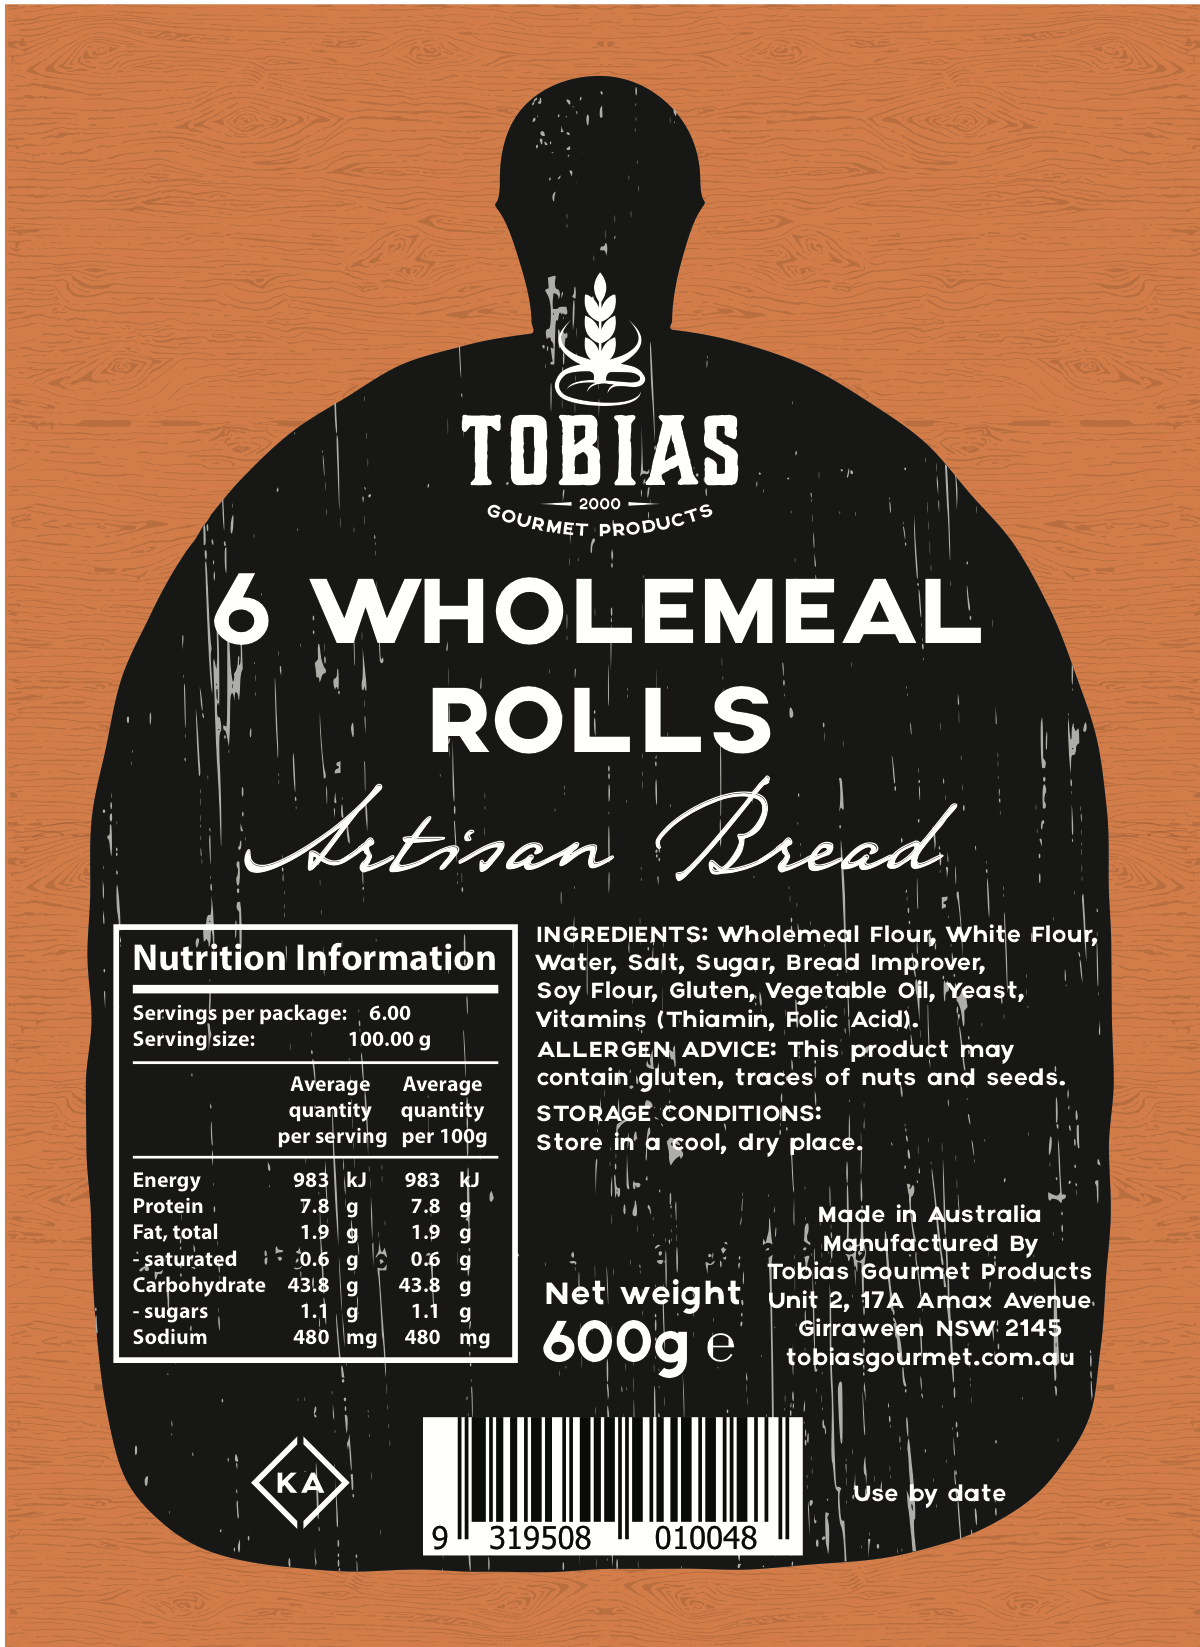 Tobias Gourmet Products - Packaging Label